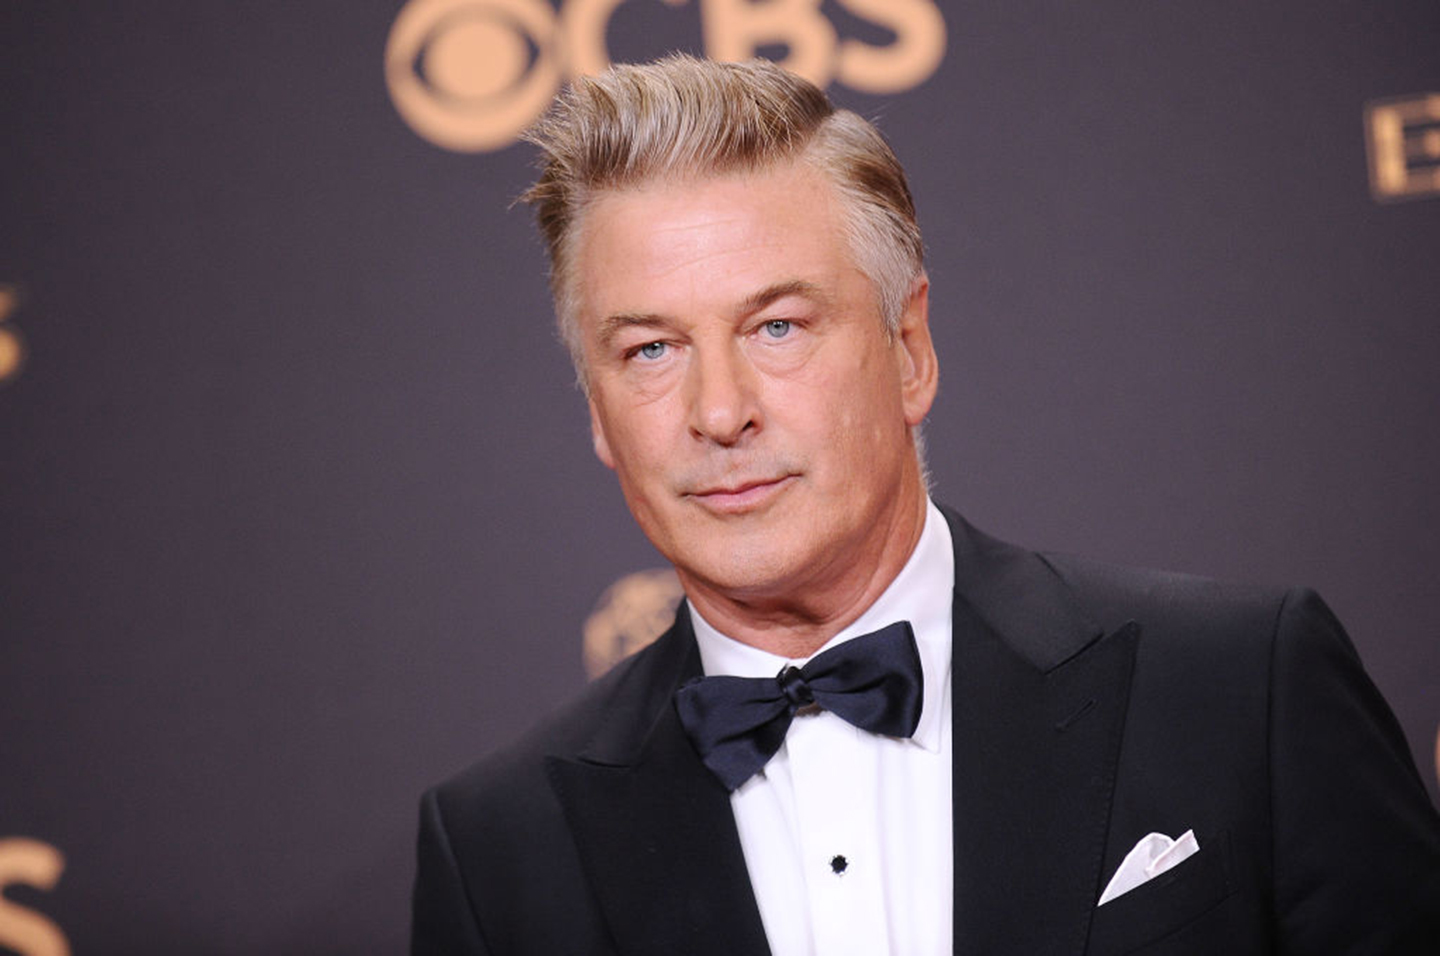 Alec Baldwin: Late-Night Hosts Have Turned Into 'Grand Juries'